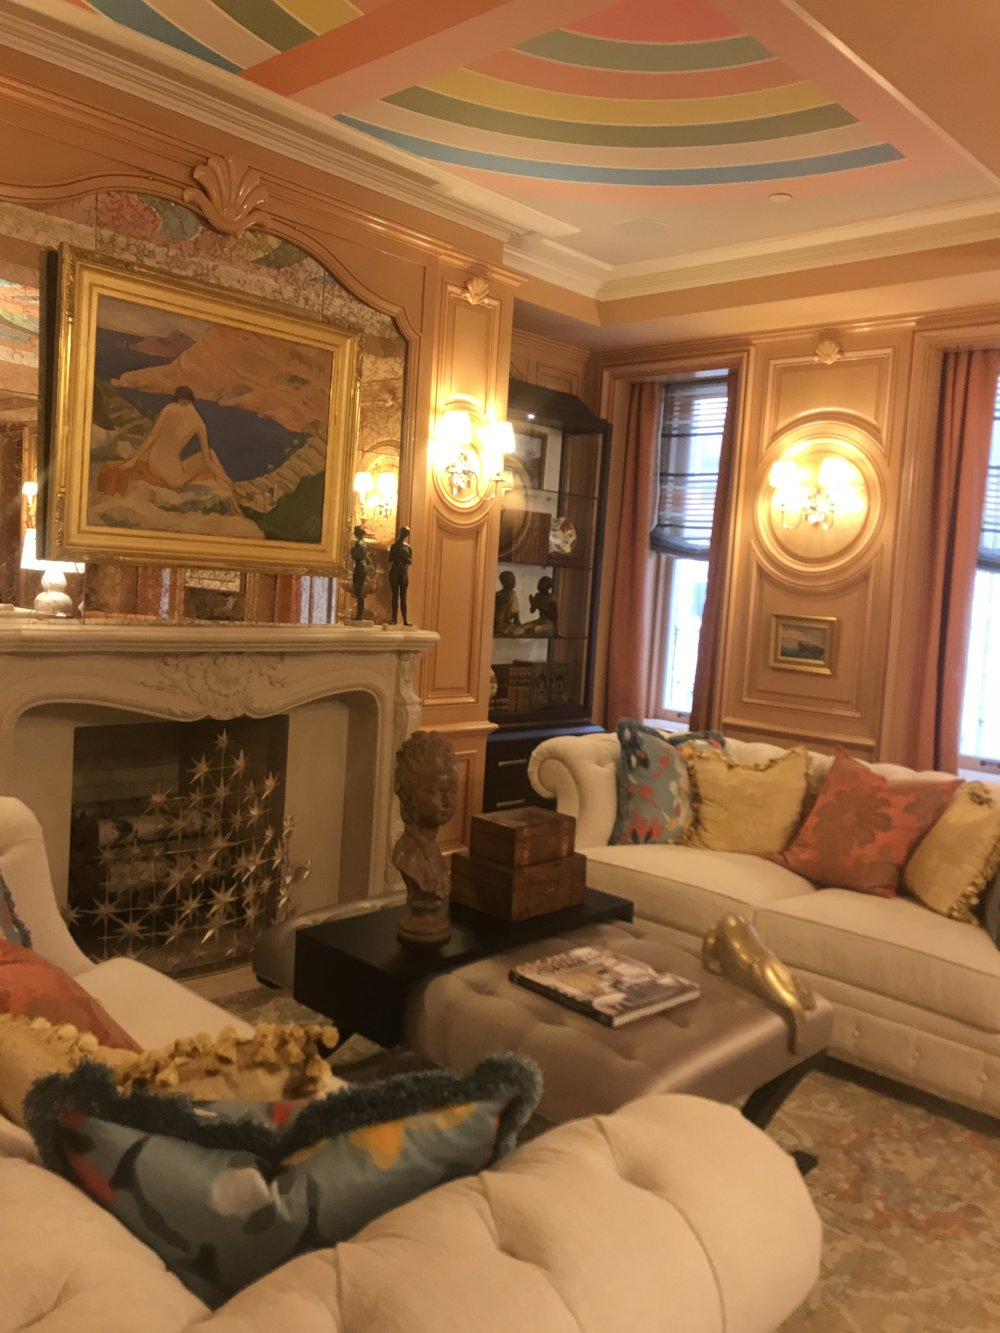 Barbara Ostrom Associates room was incredible. The Stella-esque ceiling .... the fringe on the pillows. the incredible color choices and layers textures and details .. what can i say... it was a feast for the eyes.  Barbara Ohstrom ASID